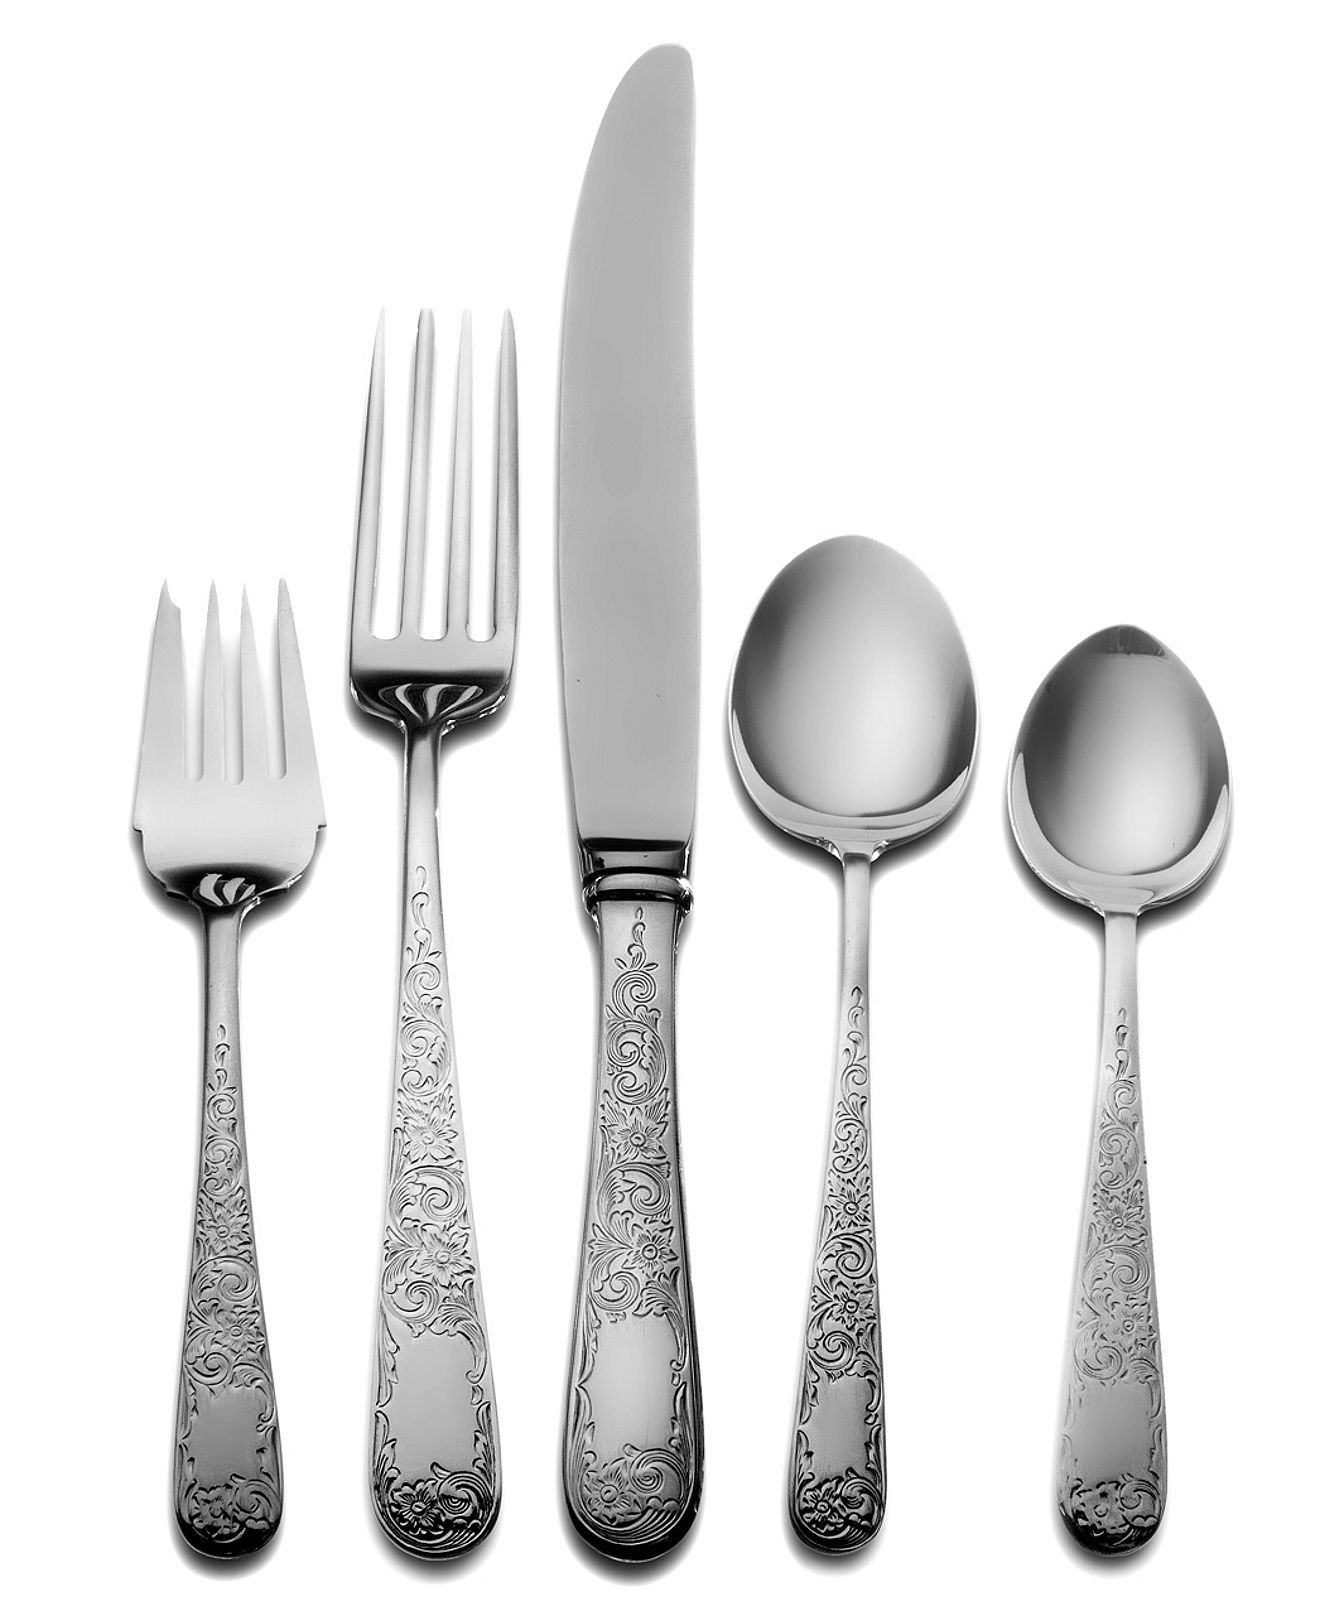 Kirk Stieff Sterling Silver Flatware Old Maryland Engraved 5 Dinner Piece Place Setting Flatware Sterling Silver Flatware Sterling Flatware Silver Flatware